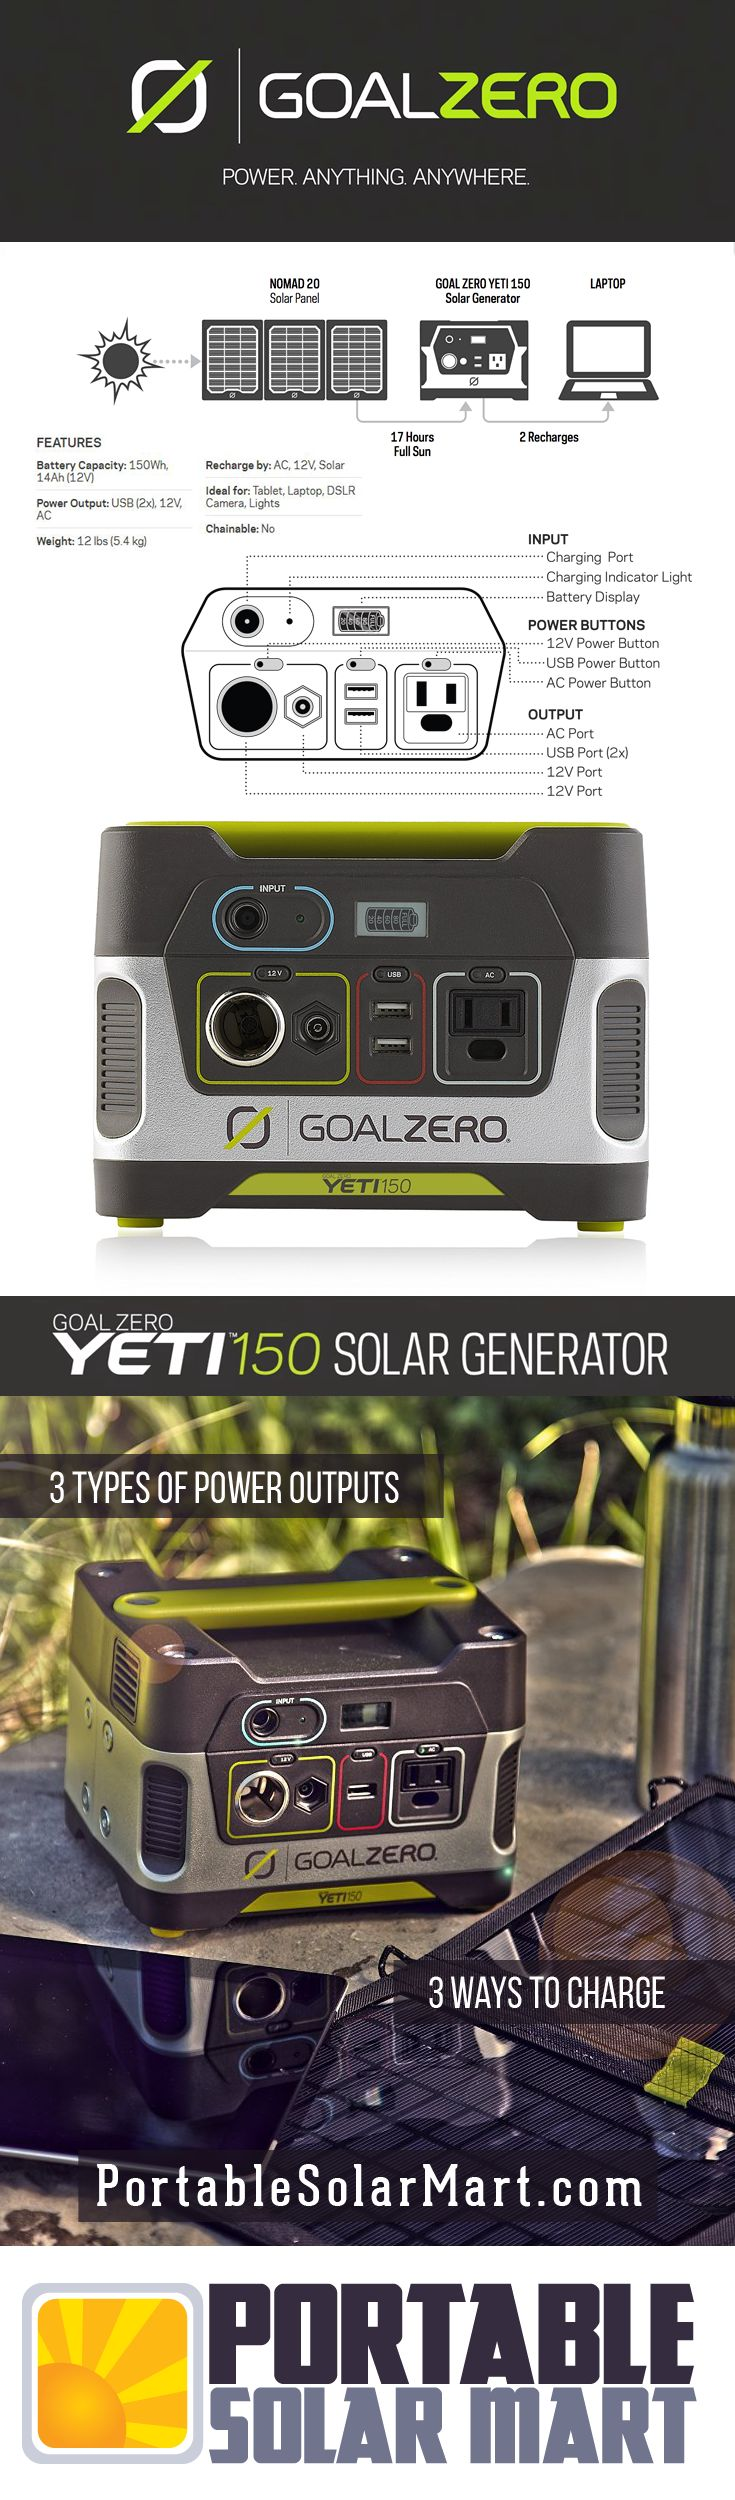 Yeti Portable Solar Generator http://portablesolarmart.com/ (looks like a cute combo unit of battery/inverter/outlets; need to check if lithium option available. )